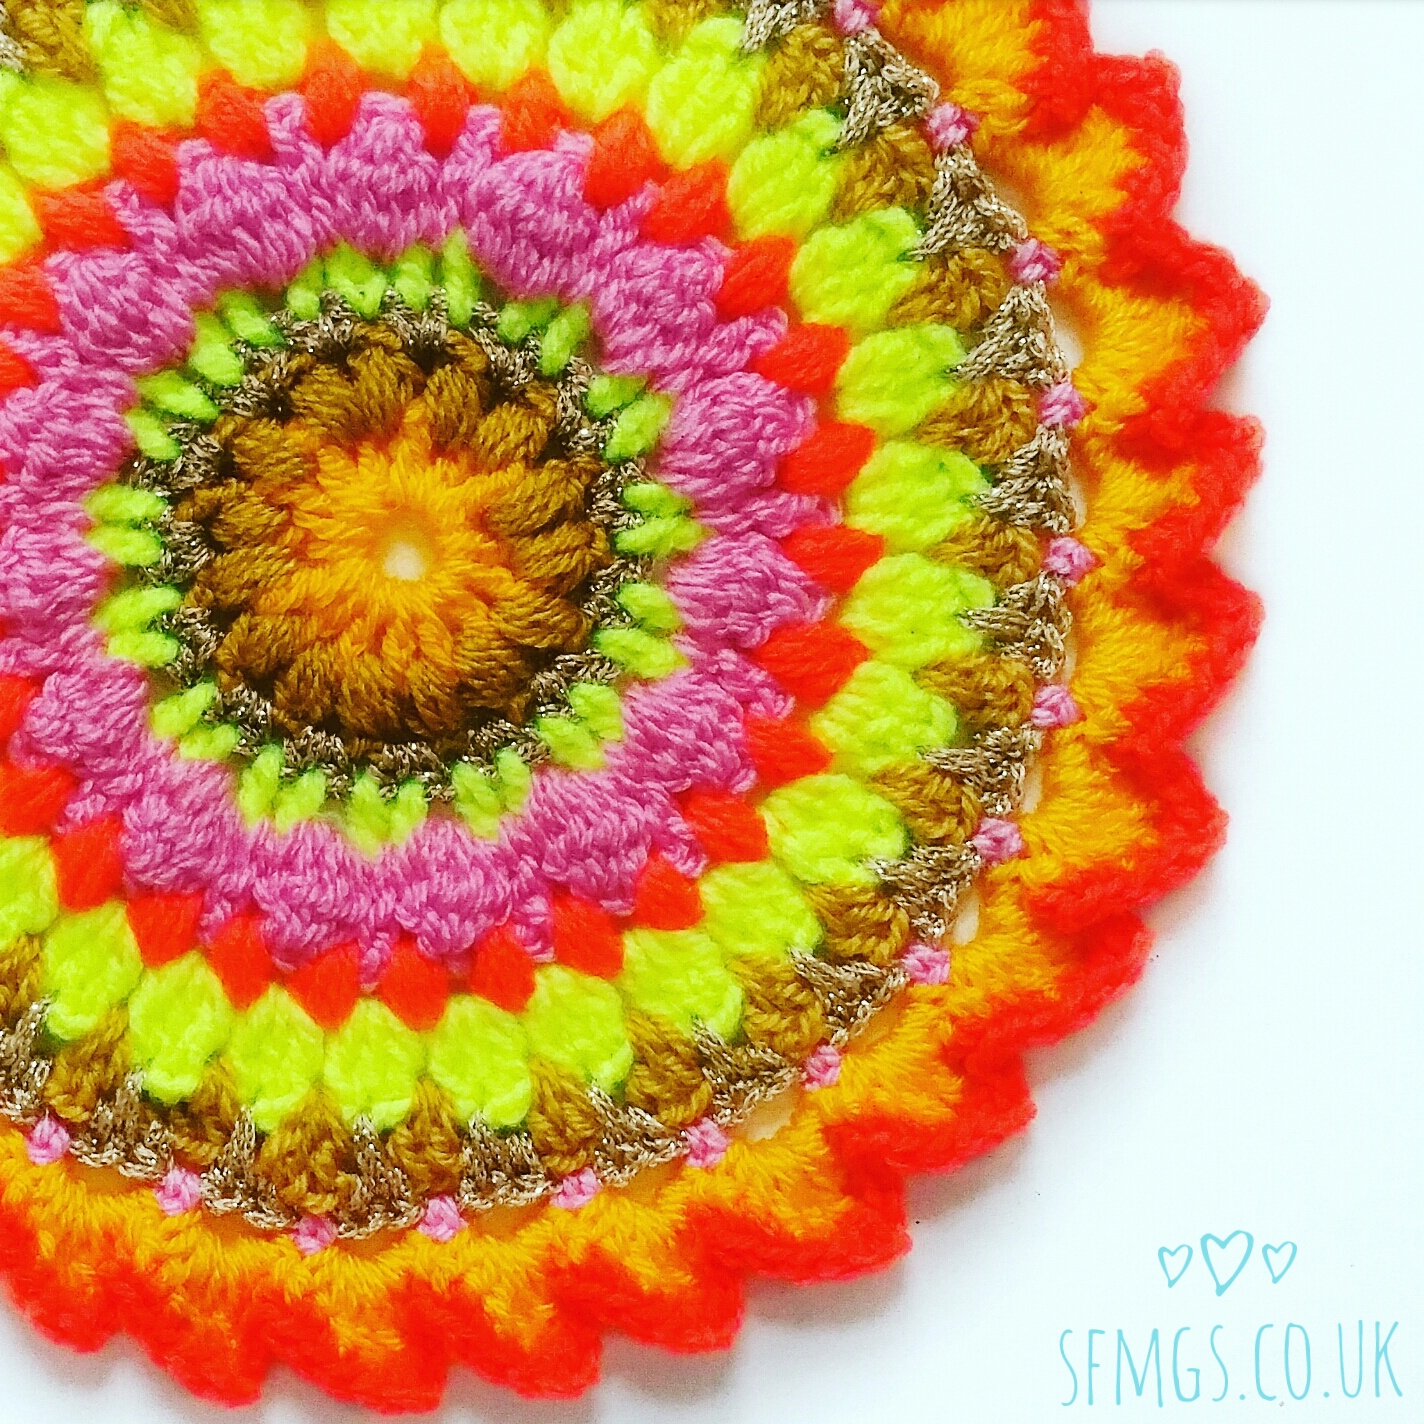 mandala crochet pattern free sfmgs boho craft crocheting